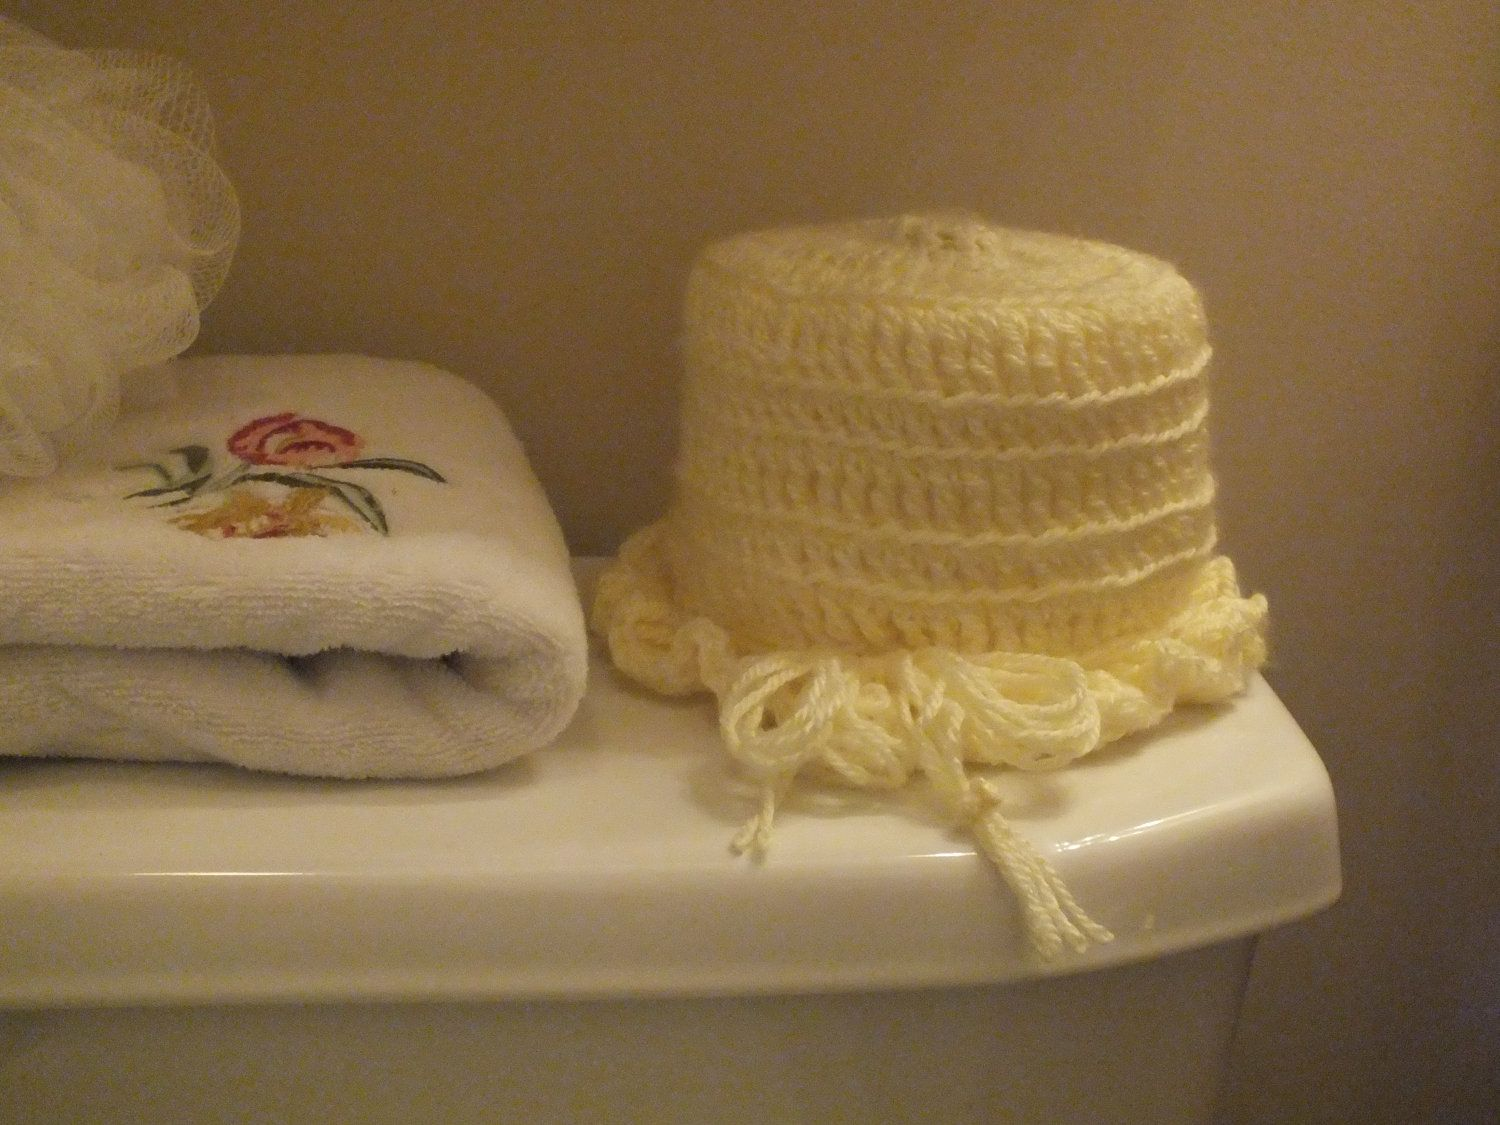 A pale yellow crocheted toilet paper cover by KnotSewKnottyGirls